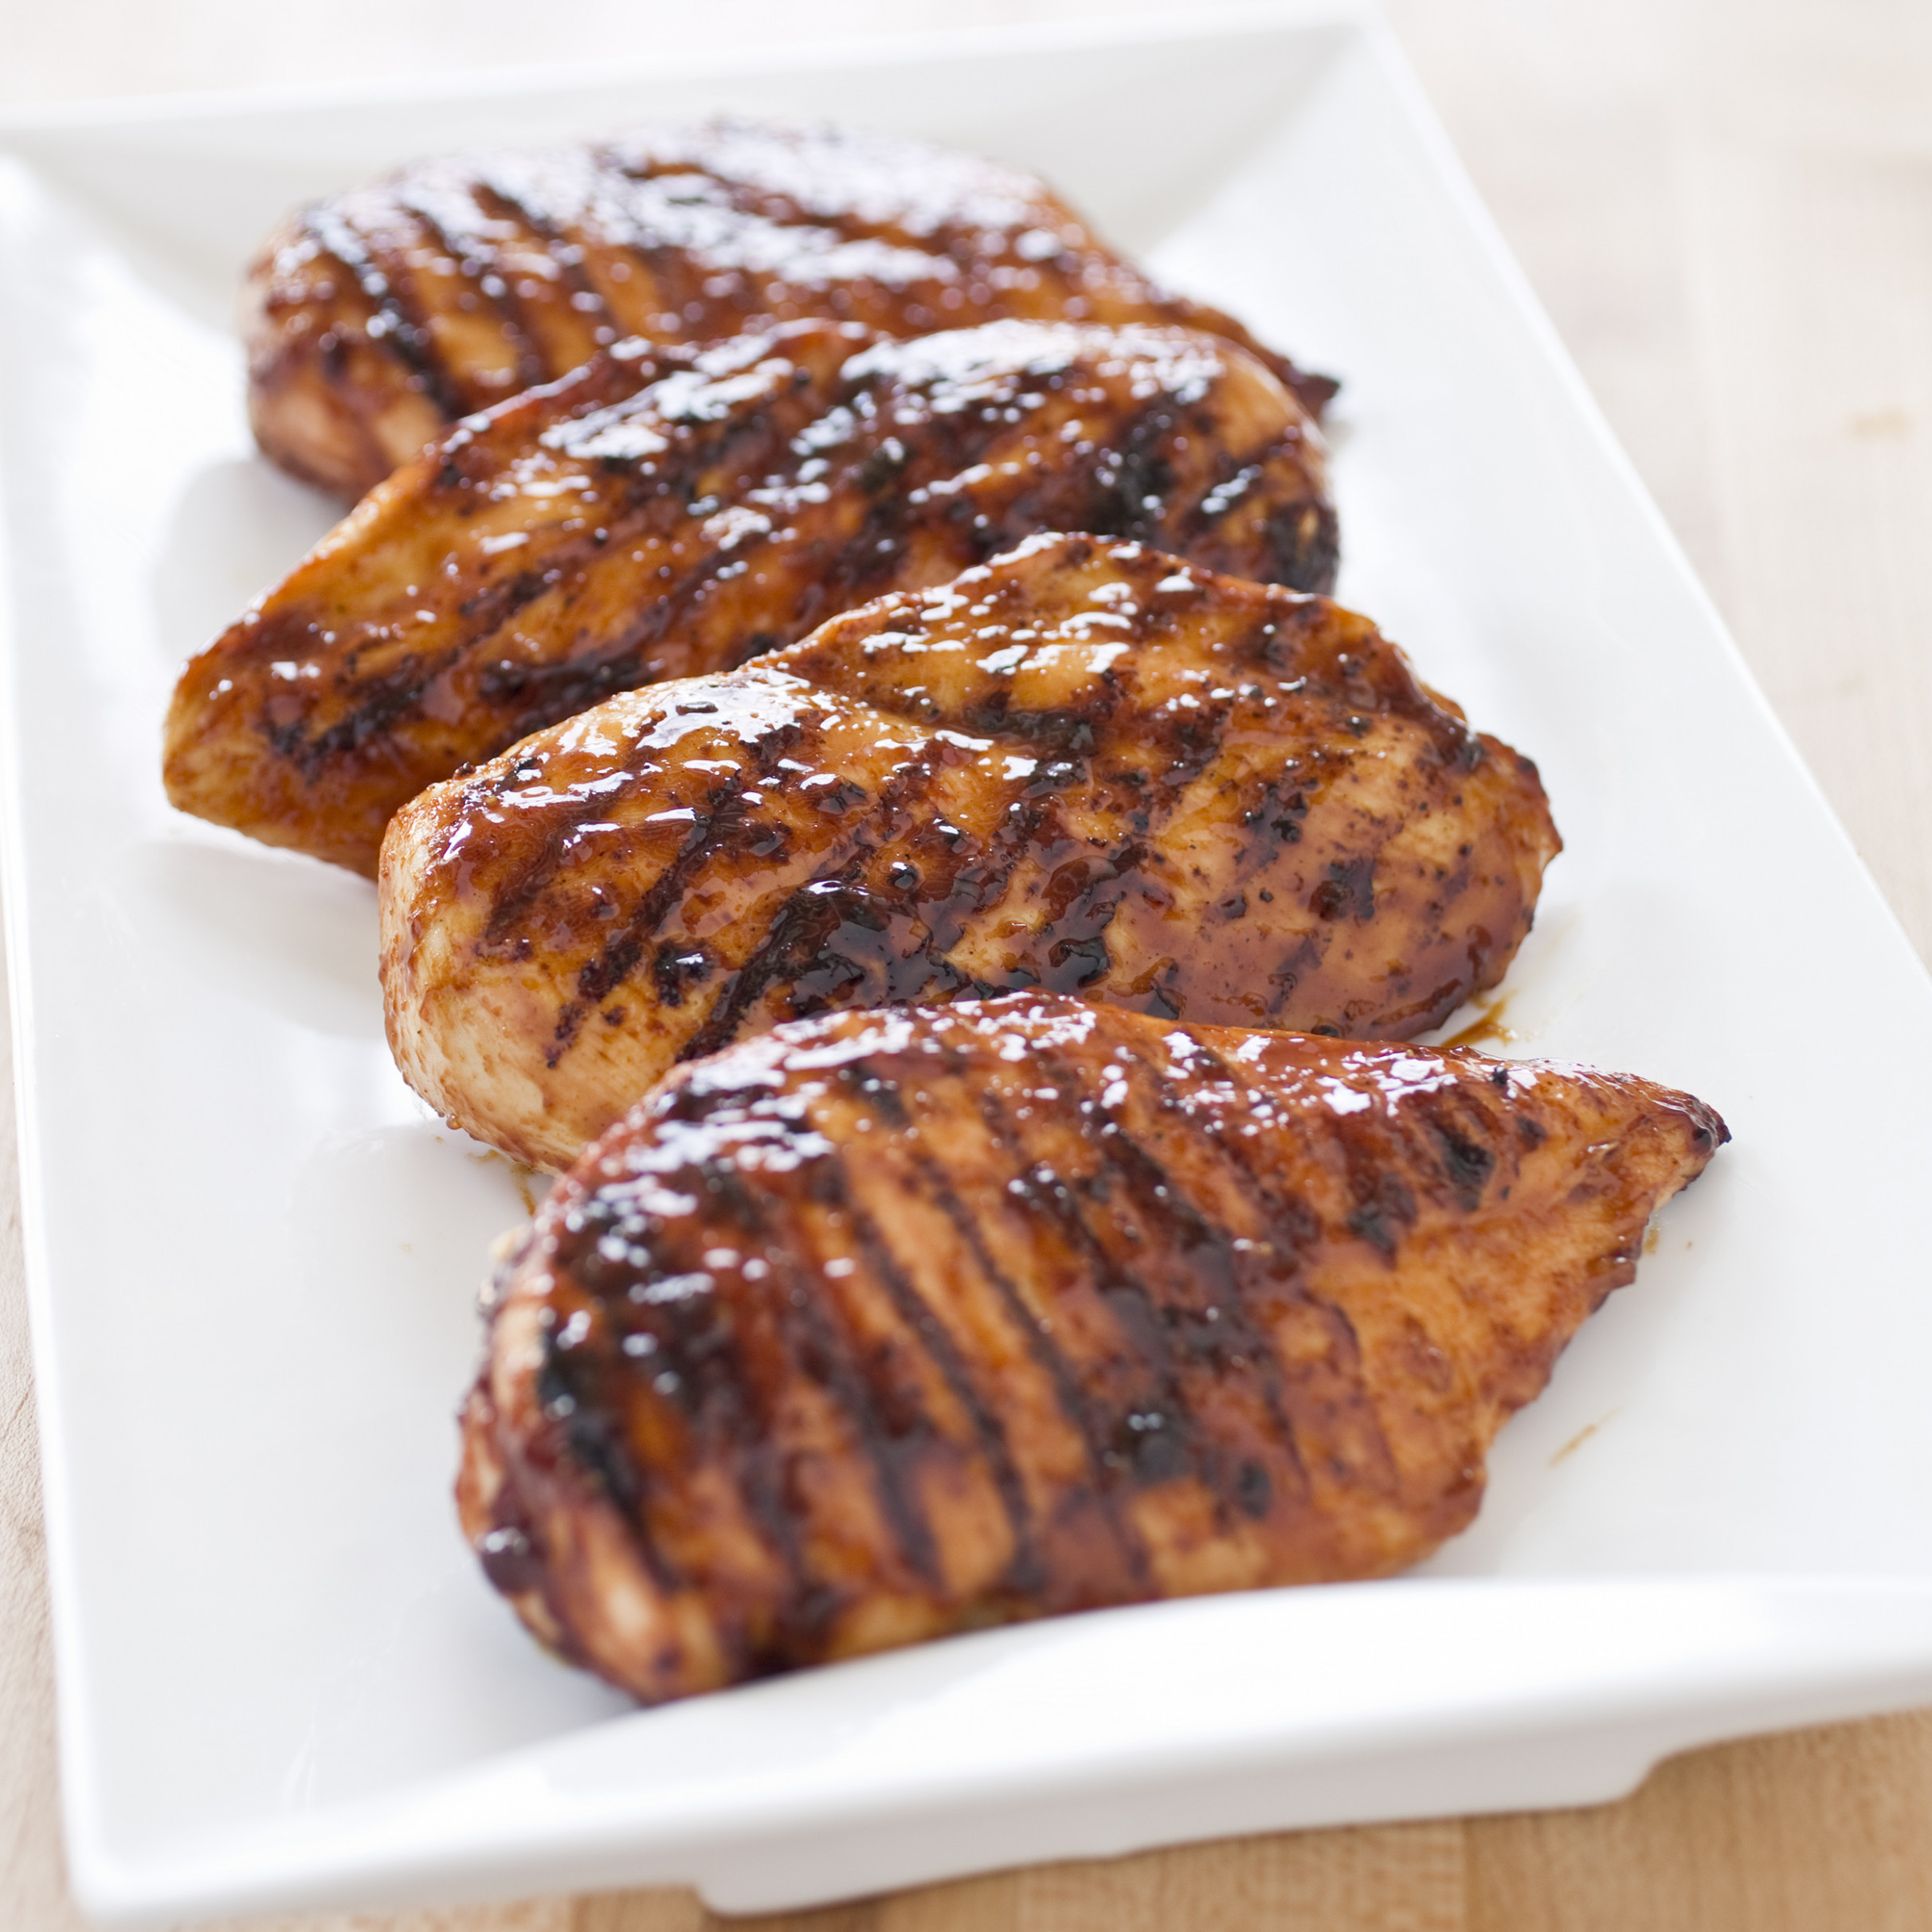 Grilled Glazed Boneless, Skinless Chicken Breasts - barbecue recipes chicken